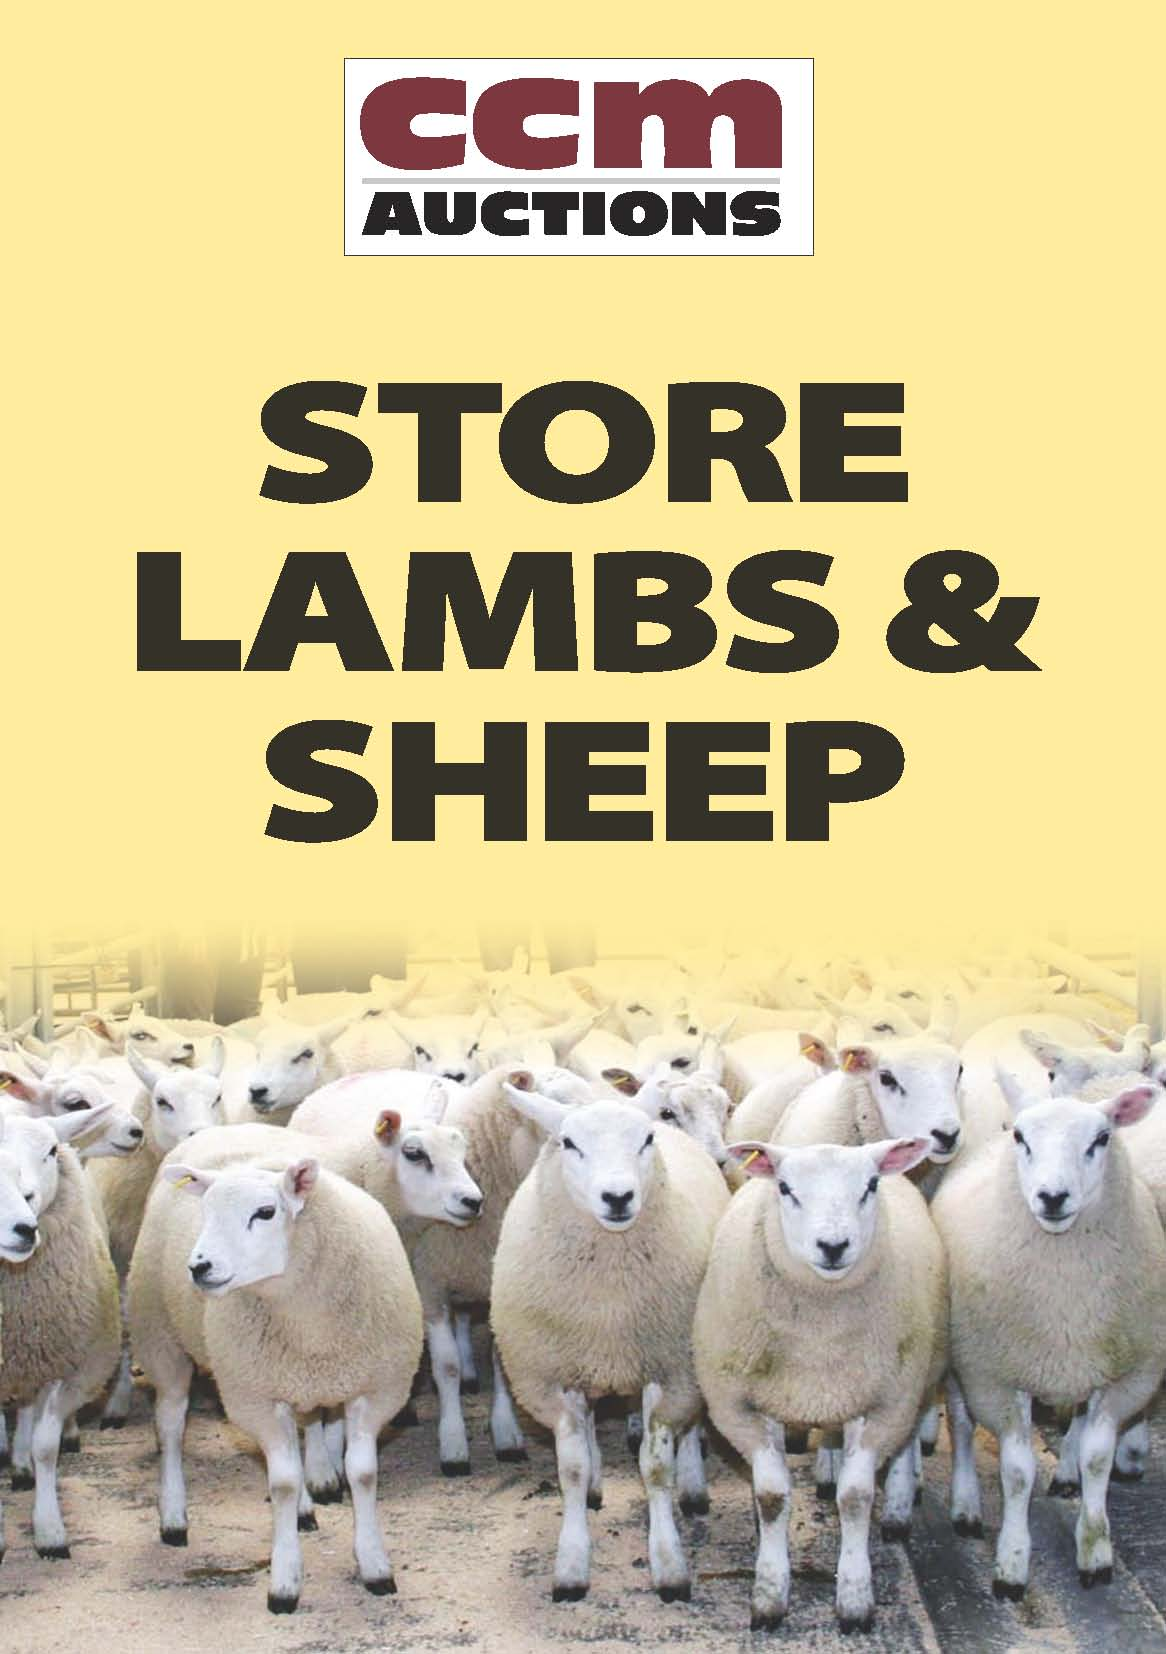 STORE LAMBS & BREEDING SHEEP - WEDNESDAY 13TH FEBRUARY 2019